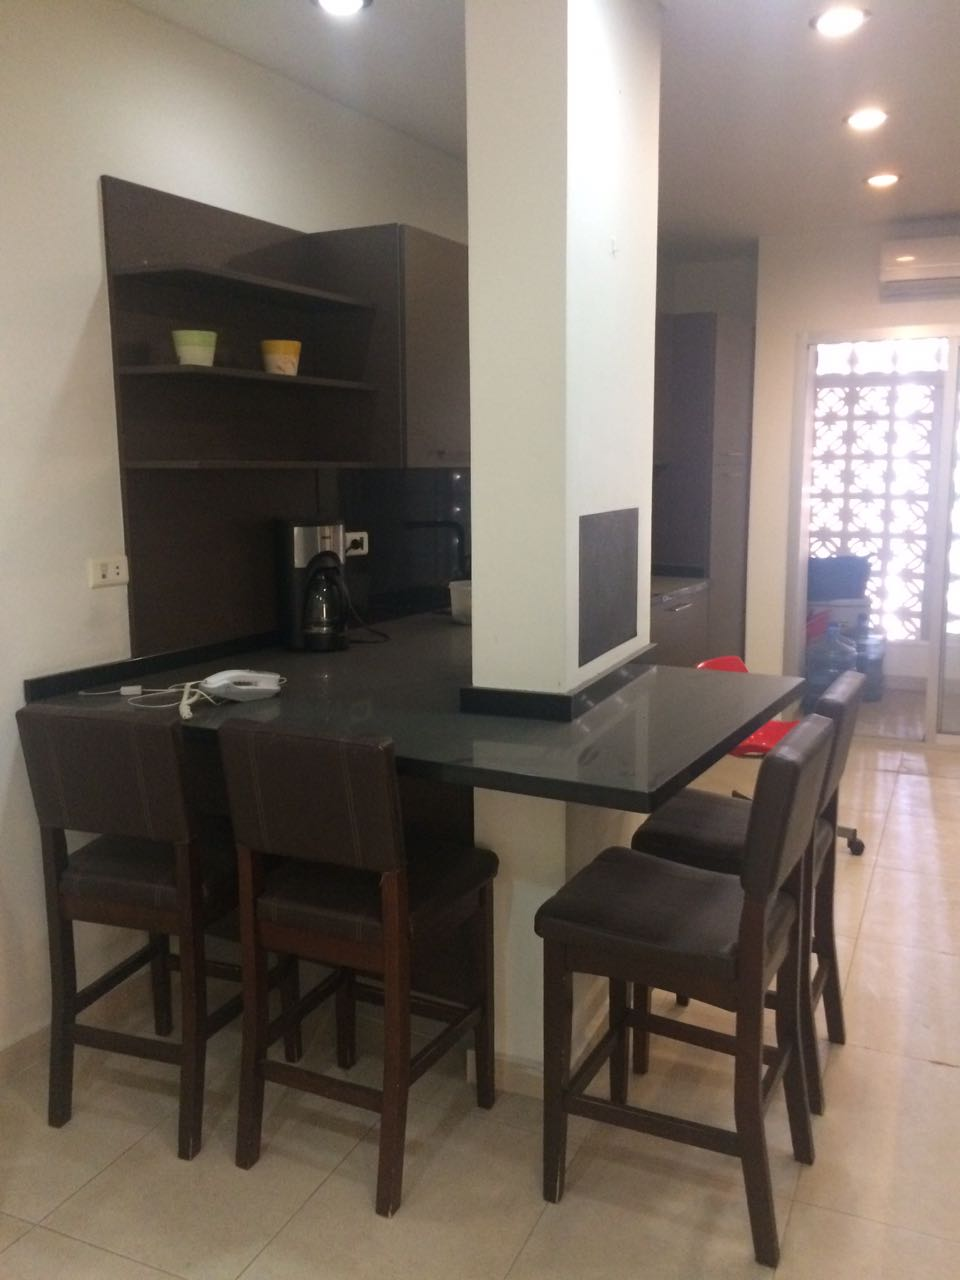 RL-2269 Apartment for Sale in Beirut, Verdun - $ 820,000